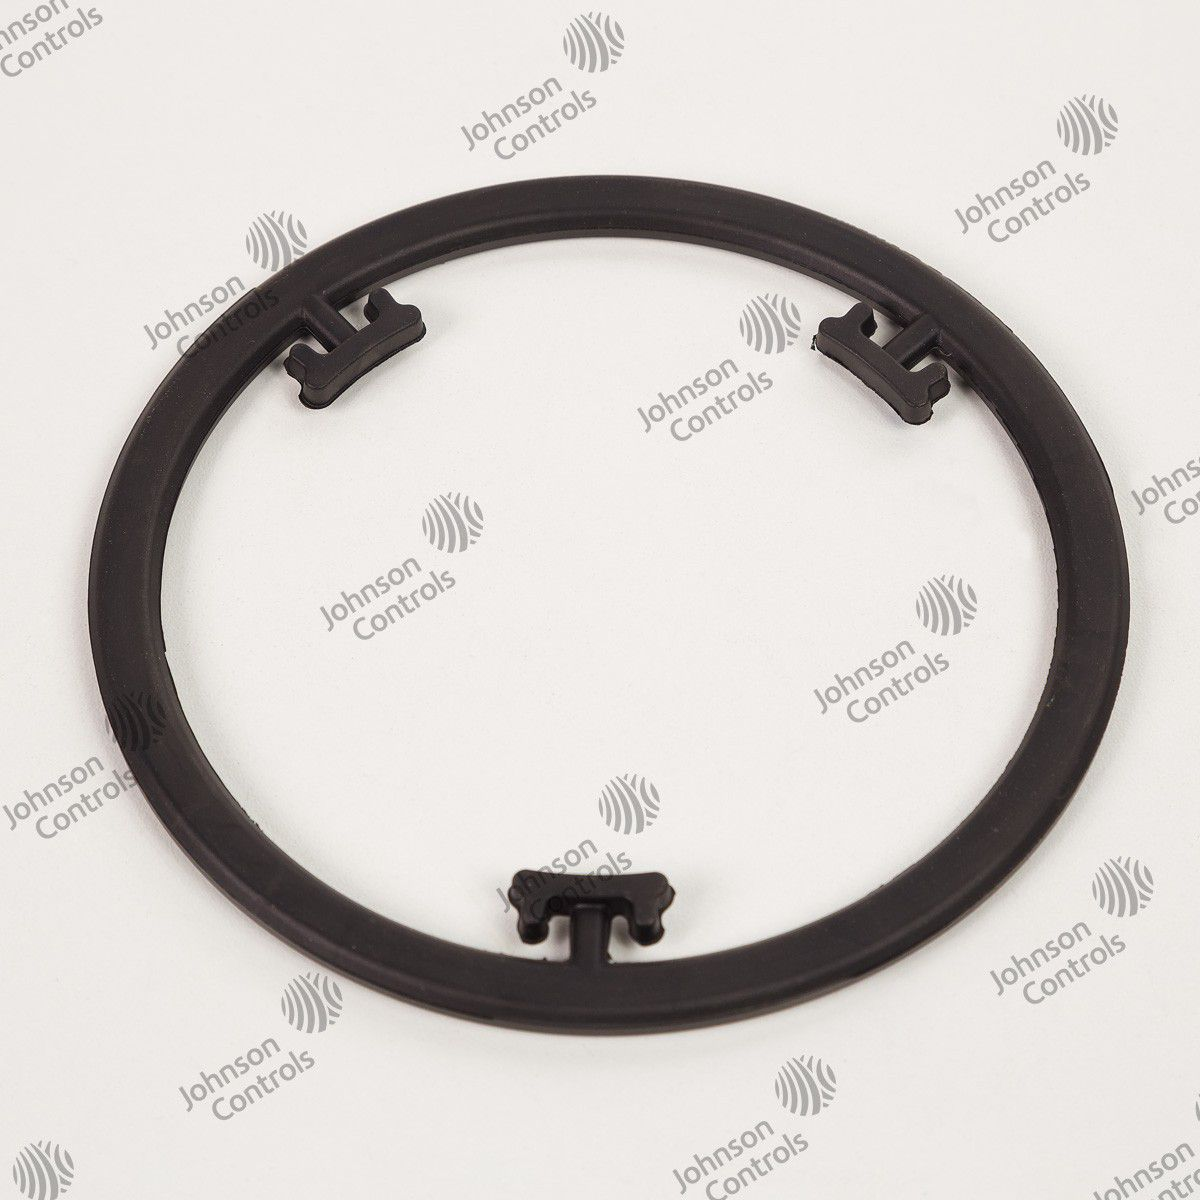 ANEL VEDACAO ORING P/ M 10 BW - 1331+917